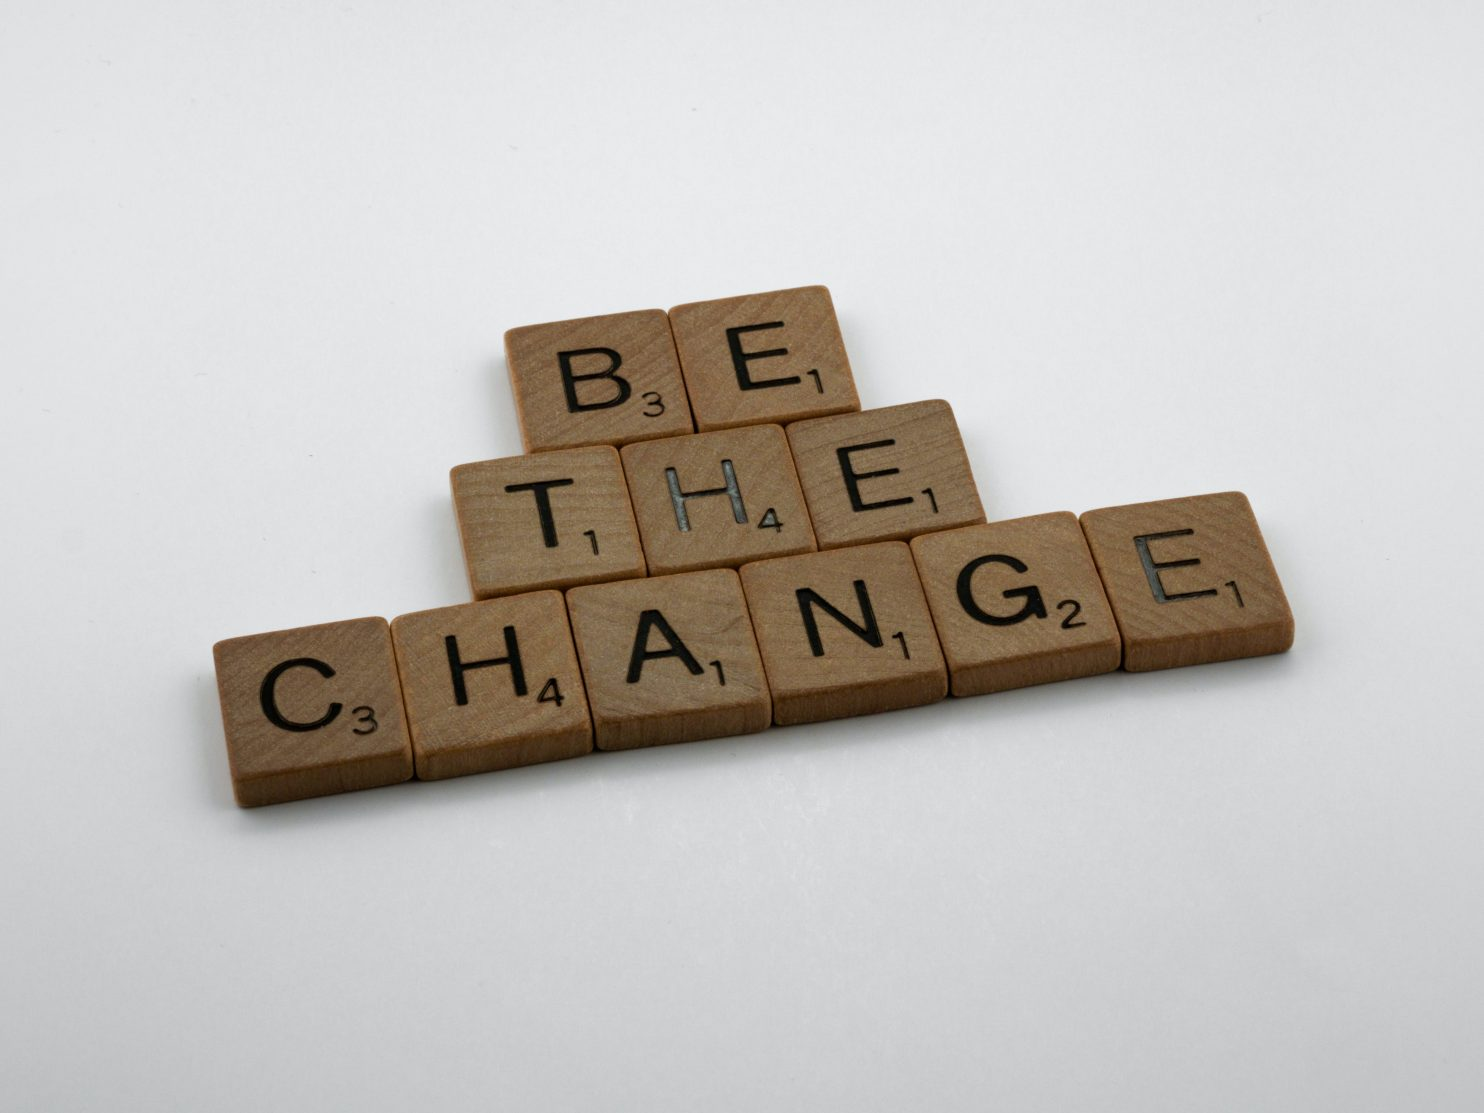 Wooden blocks on a white background that spell out 'Be the change'